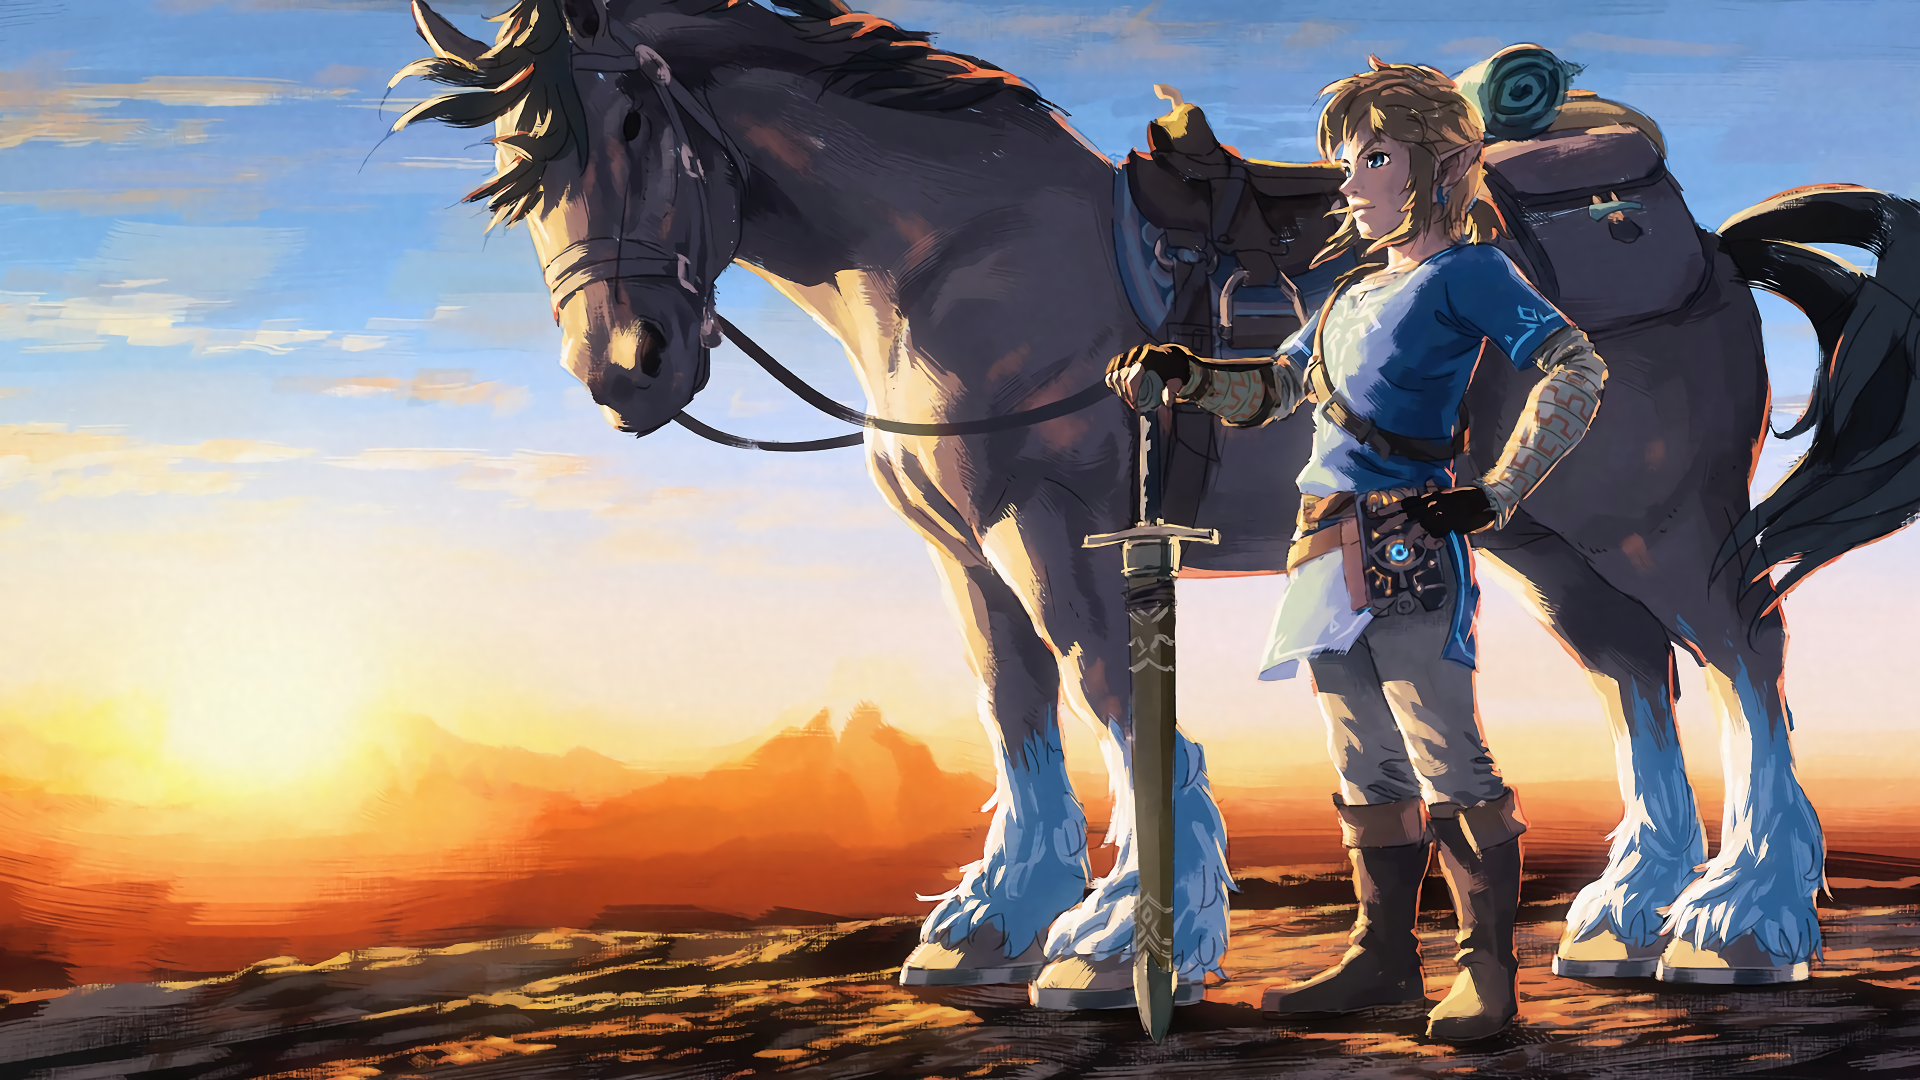 Video Game - The Legend of Zelda: Breath of the Wild  Link Horse Wallpaper